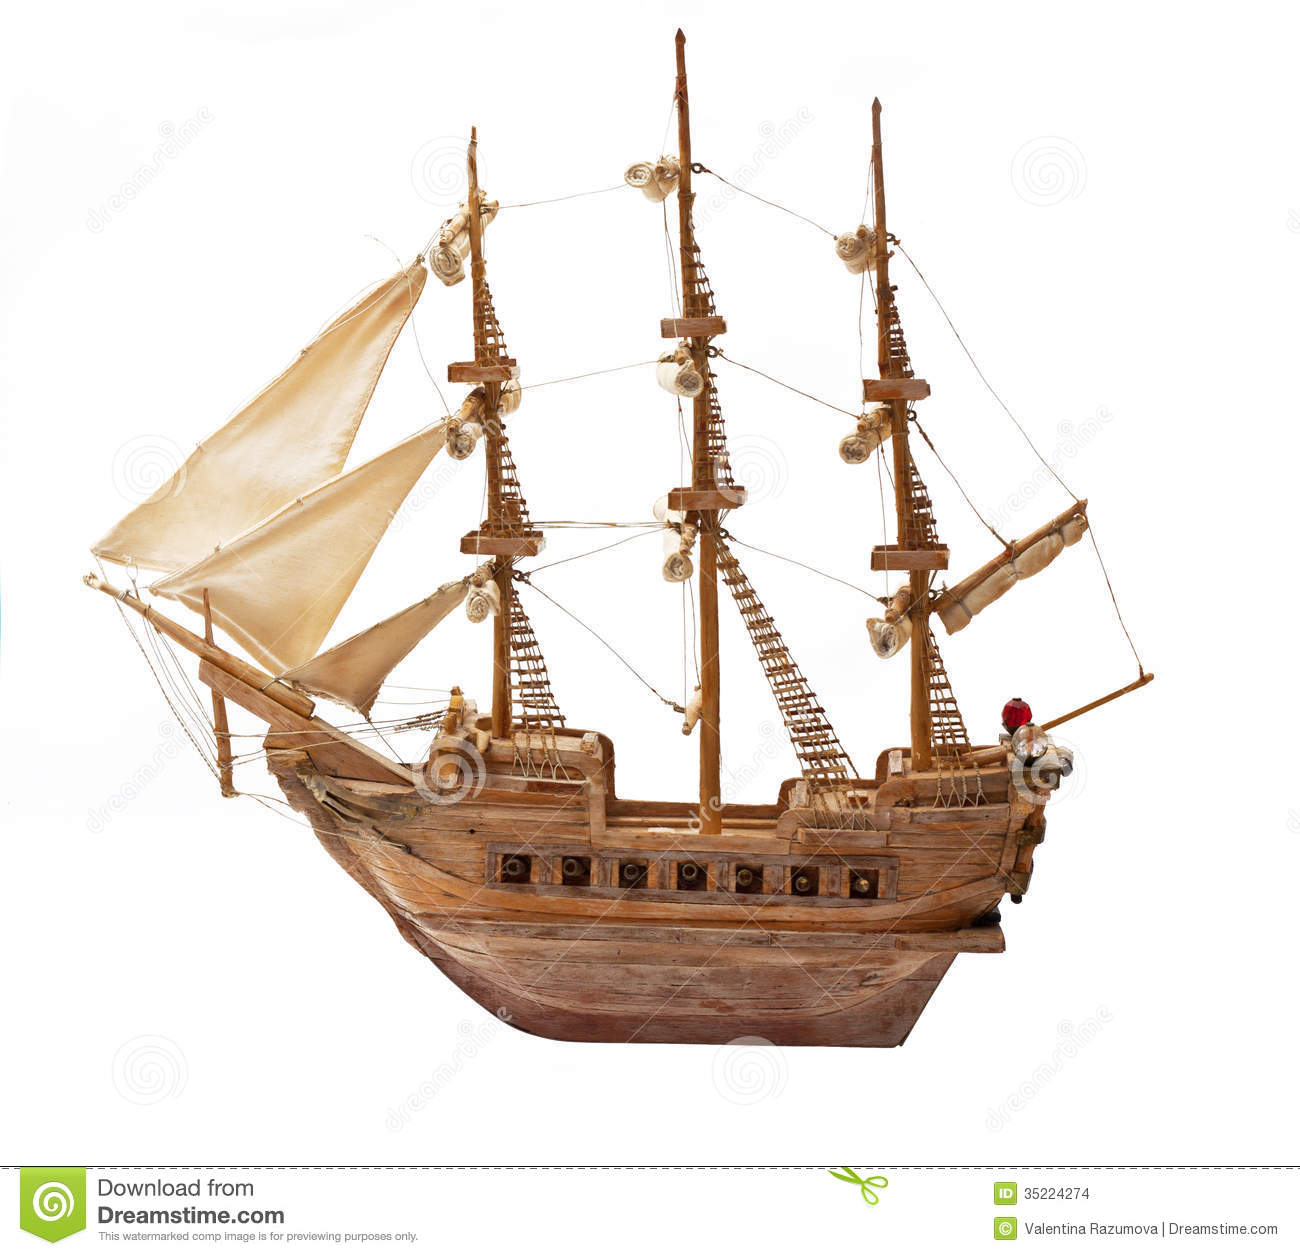 Antique Ship As Wooden Model Stock Images - Image: 35224274